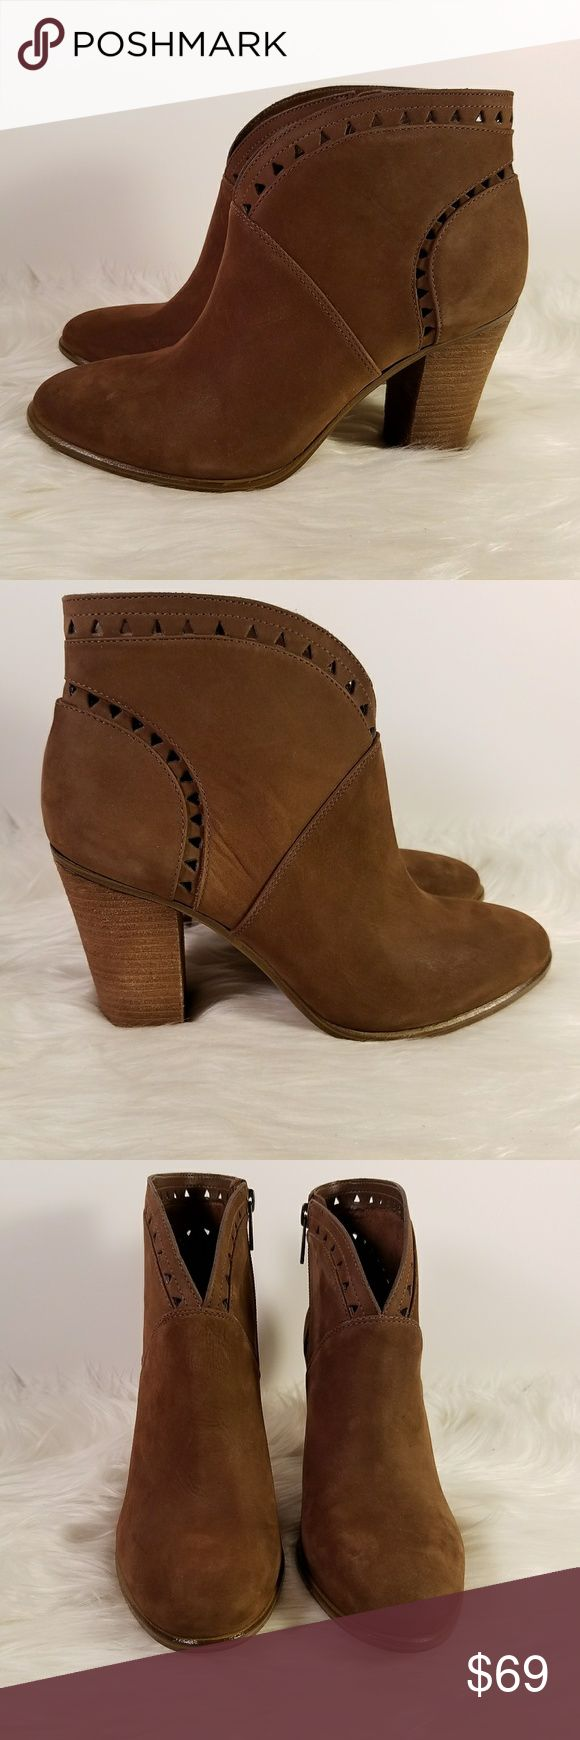 """NWB Vince Camuto Leather Fritan Ankle Booties This is a new pair of Vince Camuto leather booties.  Features:  - stacked approximately 3 1/2"""" heel  - approximatley 4"""" shaft  - side zipper  - leather uppers New, unworn boots in box, no retail tags  5txxafij/ei Vince Camuto Shoes Ankle Boots & Booties"""